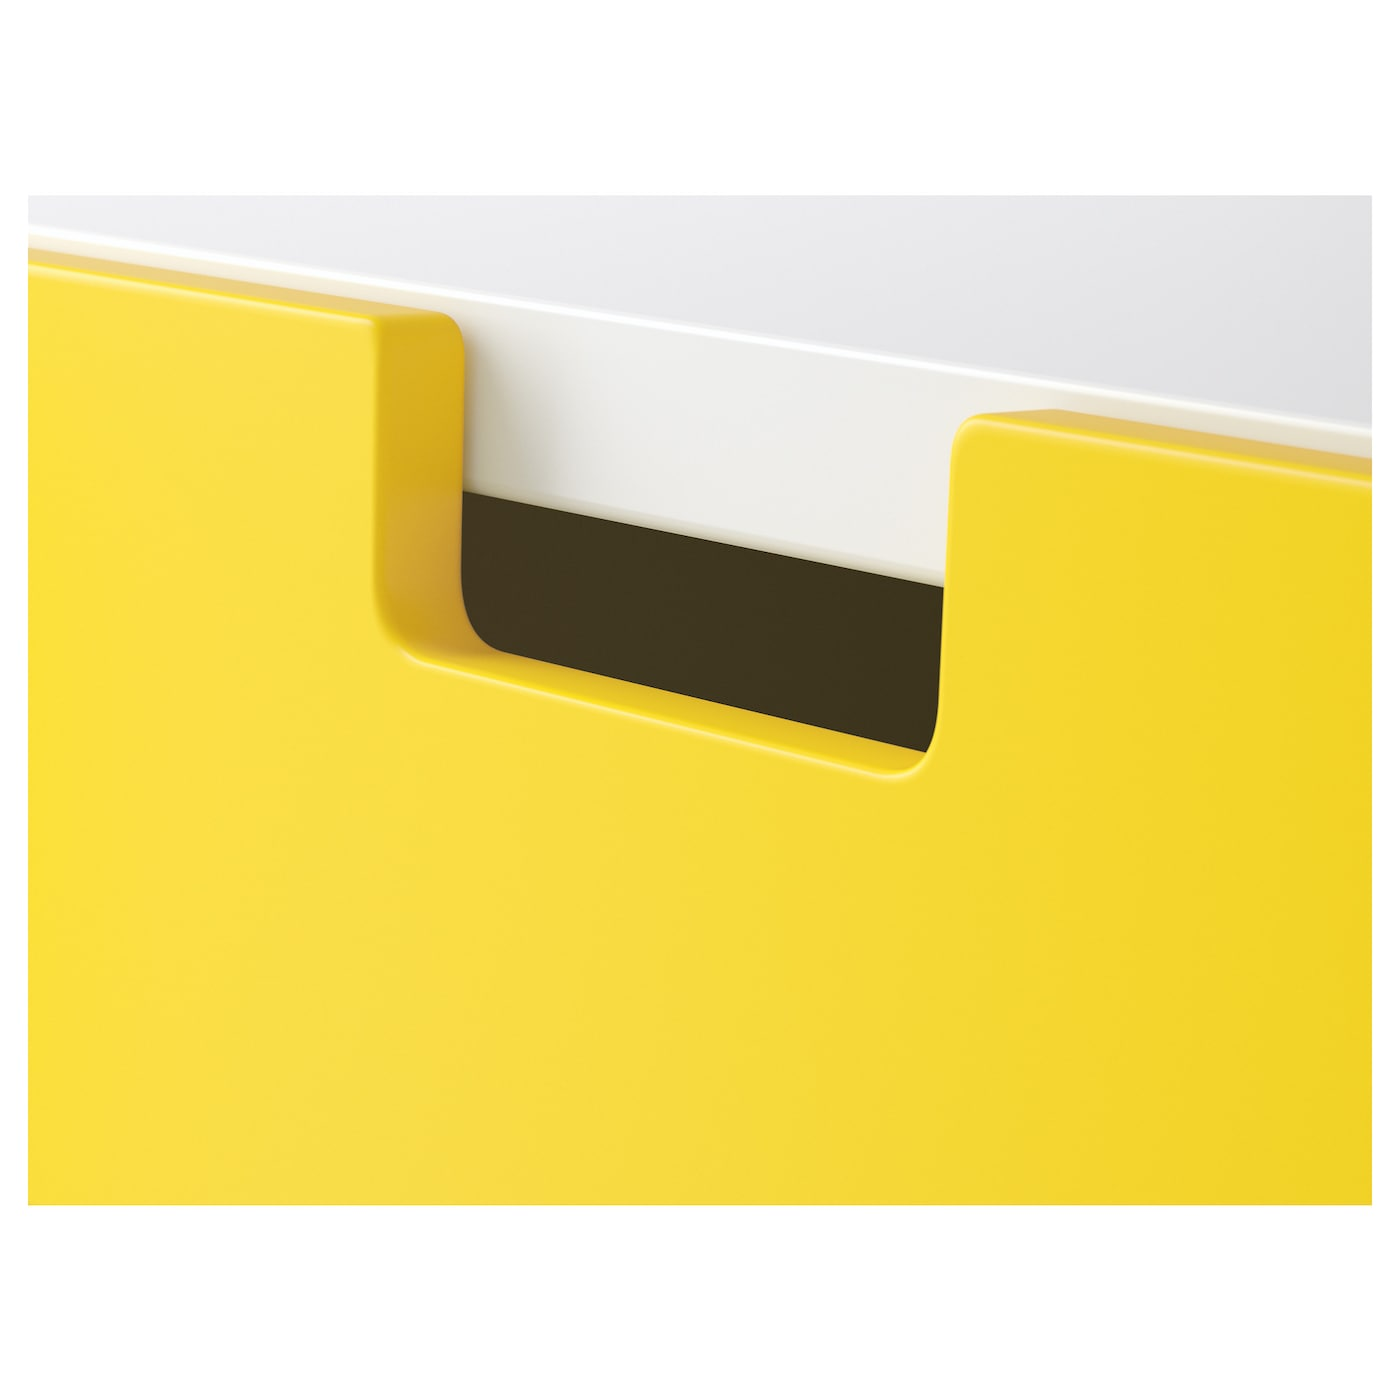 stuva banc avec rangement blanc jaune 90x50x50 cm ikea. Black Bedroom Furniture Sets. Home Design Ideas